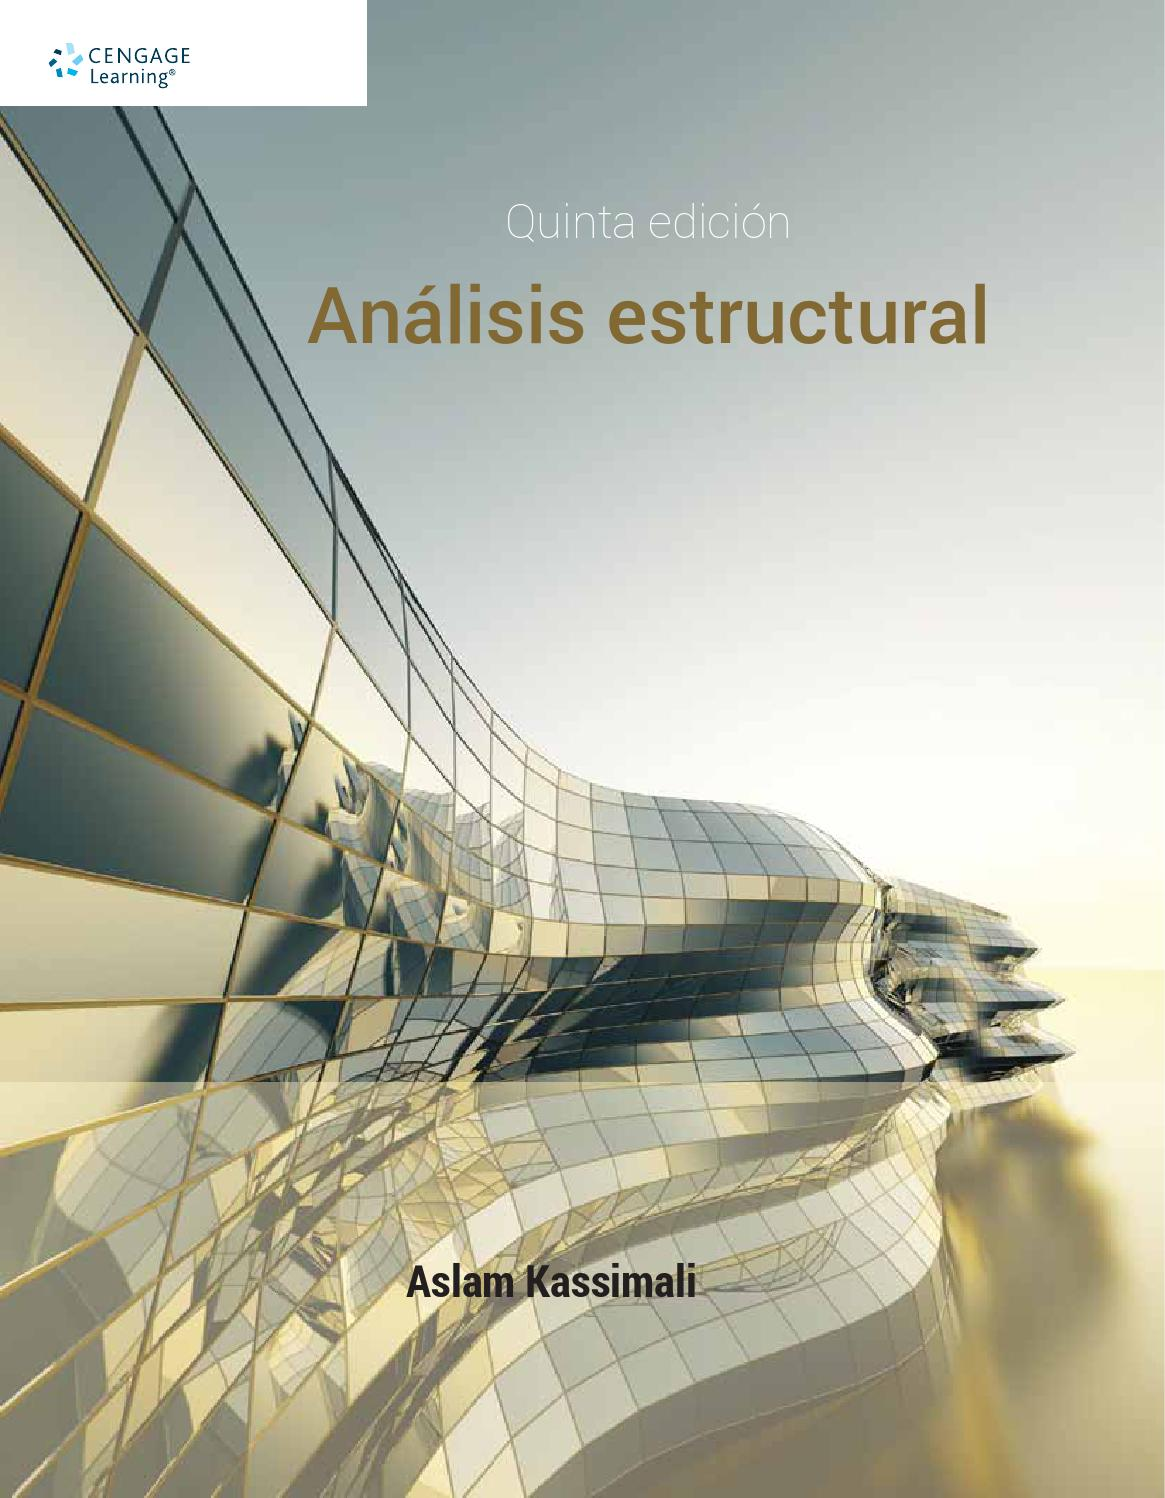 Análisis Estructural. 5a. Ed. Aslam Kassimali. by Cengage Learning ...